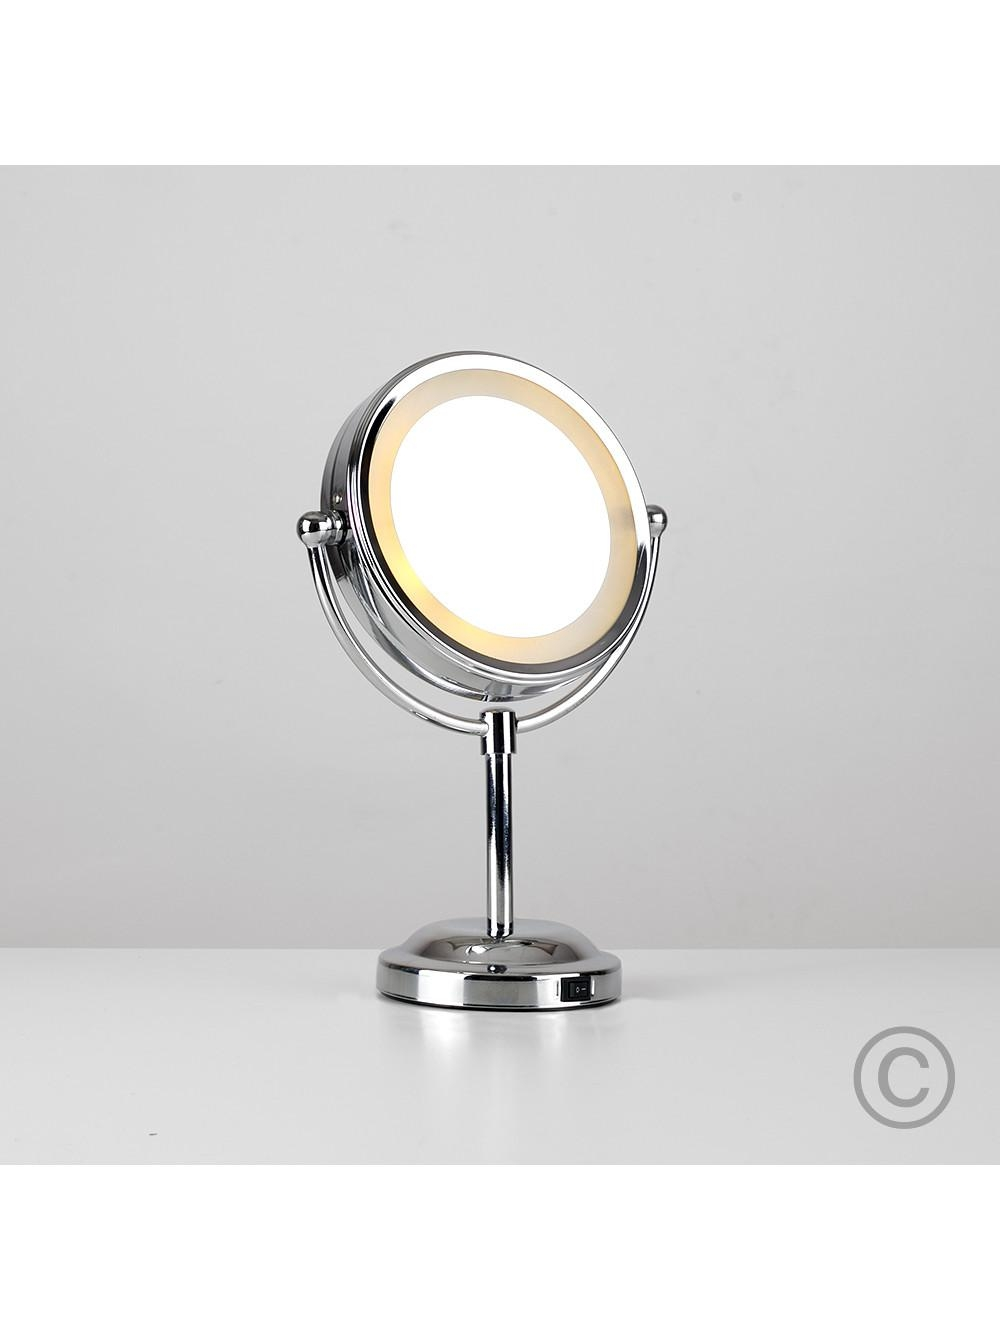 Small Round Light Up Free Standing Mirror | Valuelights In Small Free Standing Mirrors (Image 17 of 20)